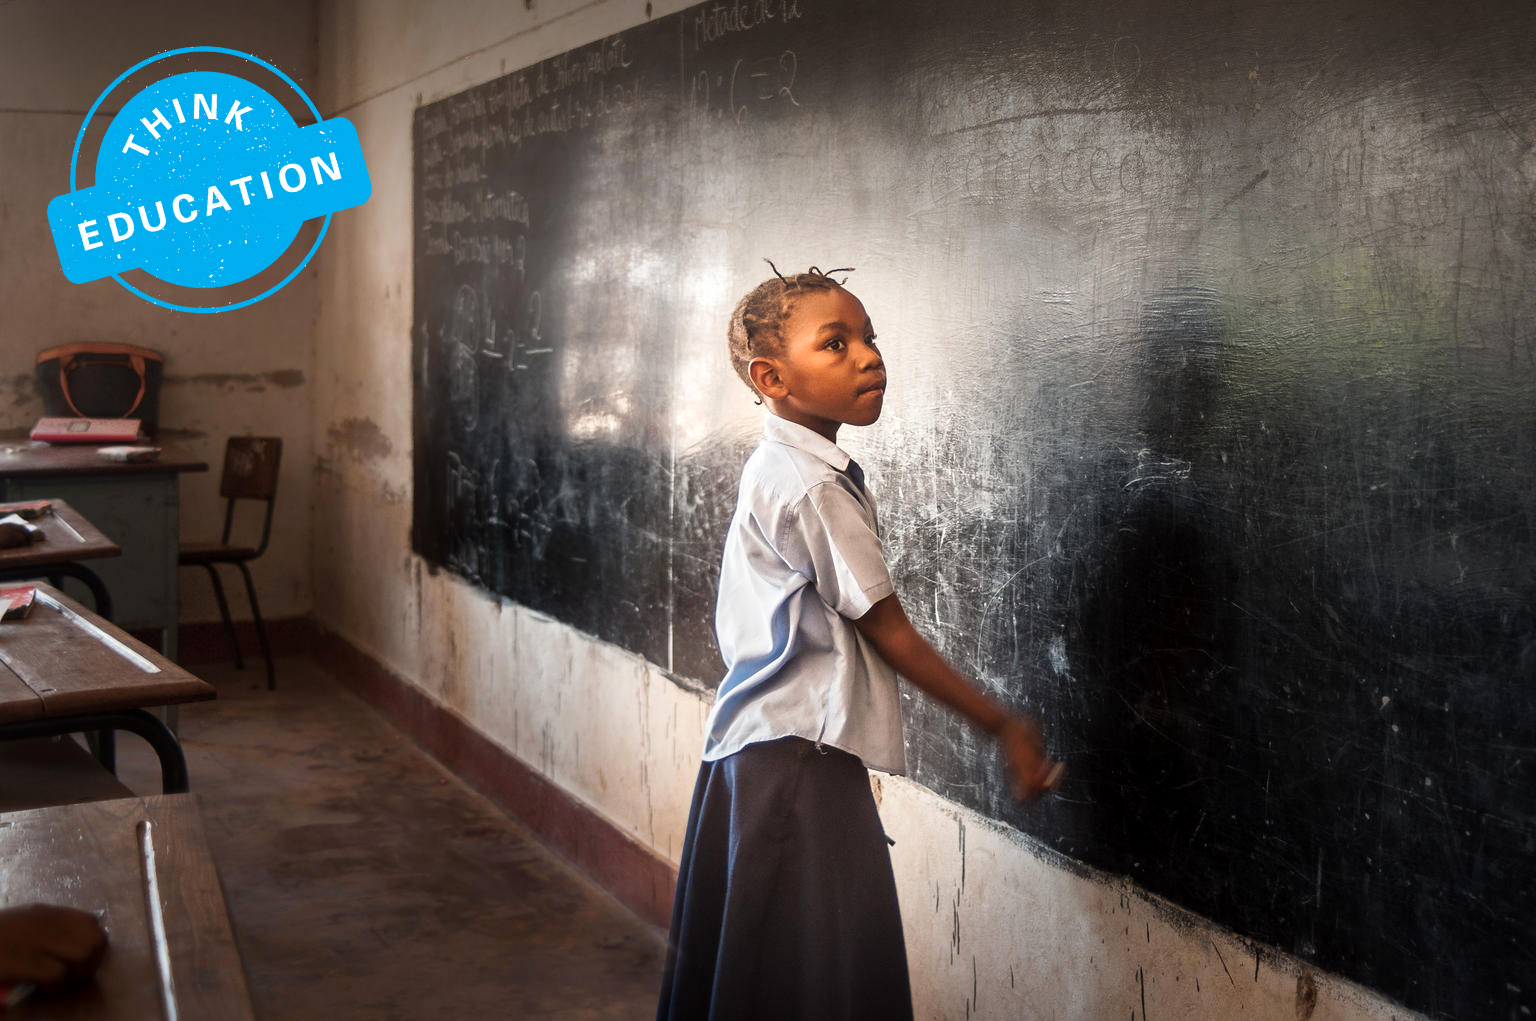 A young girl reaches out towards the blackboard in a classroom.